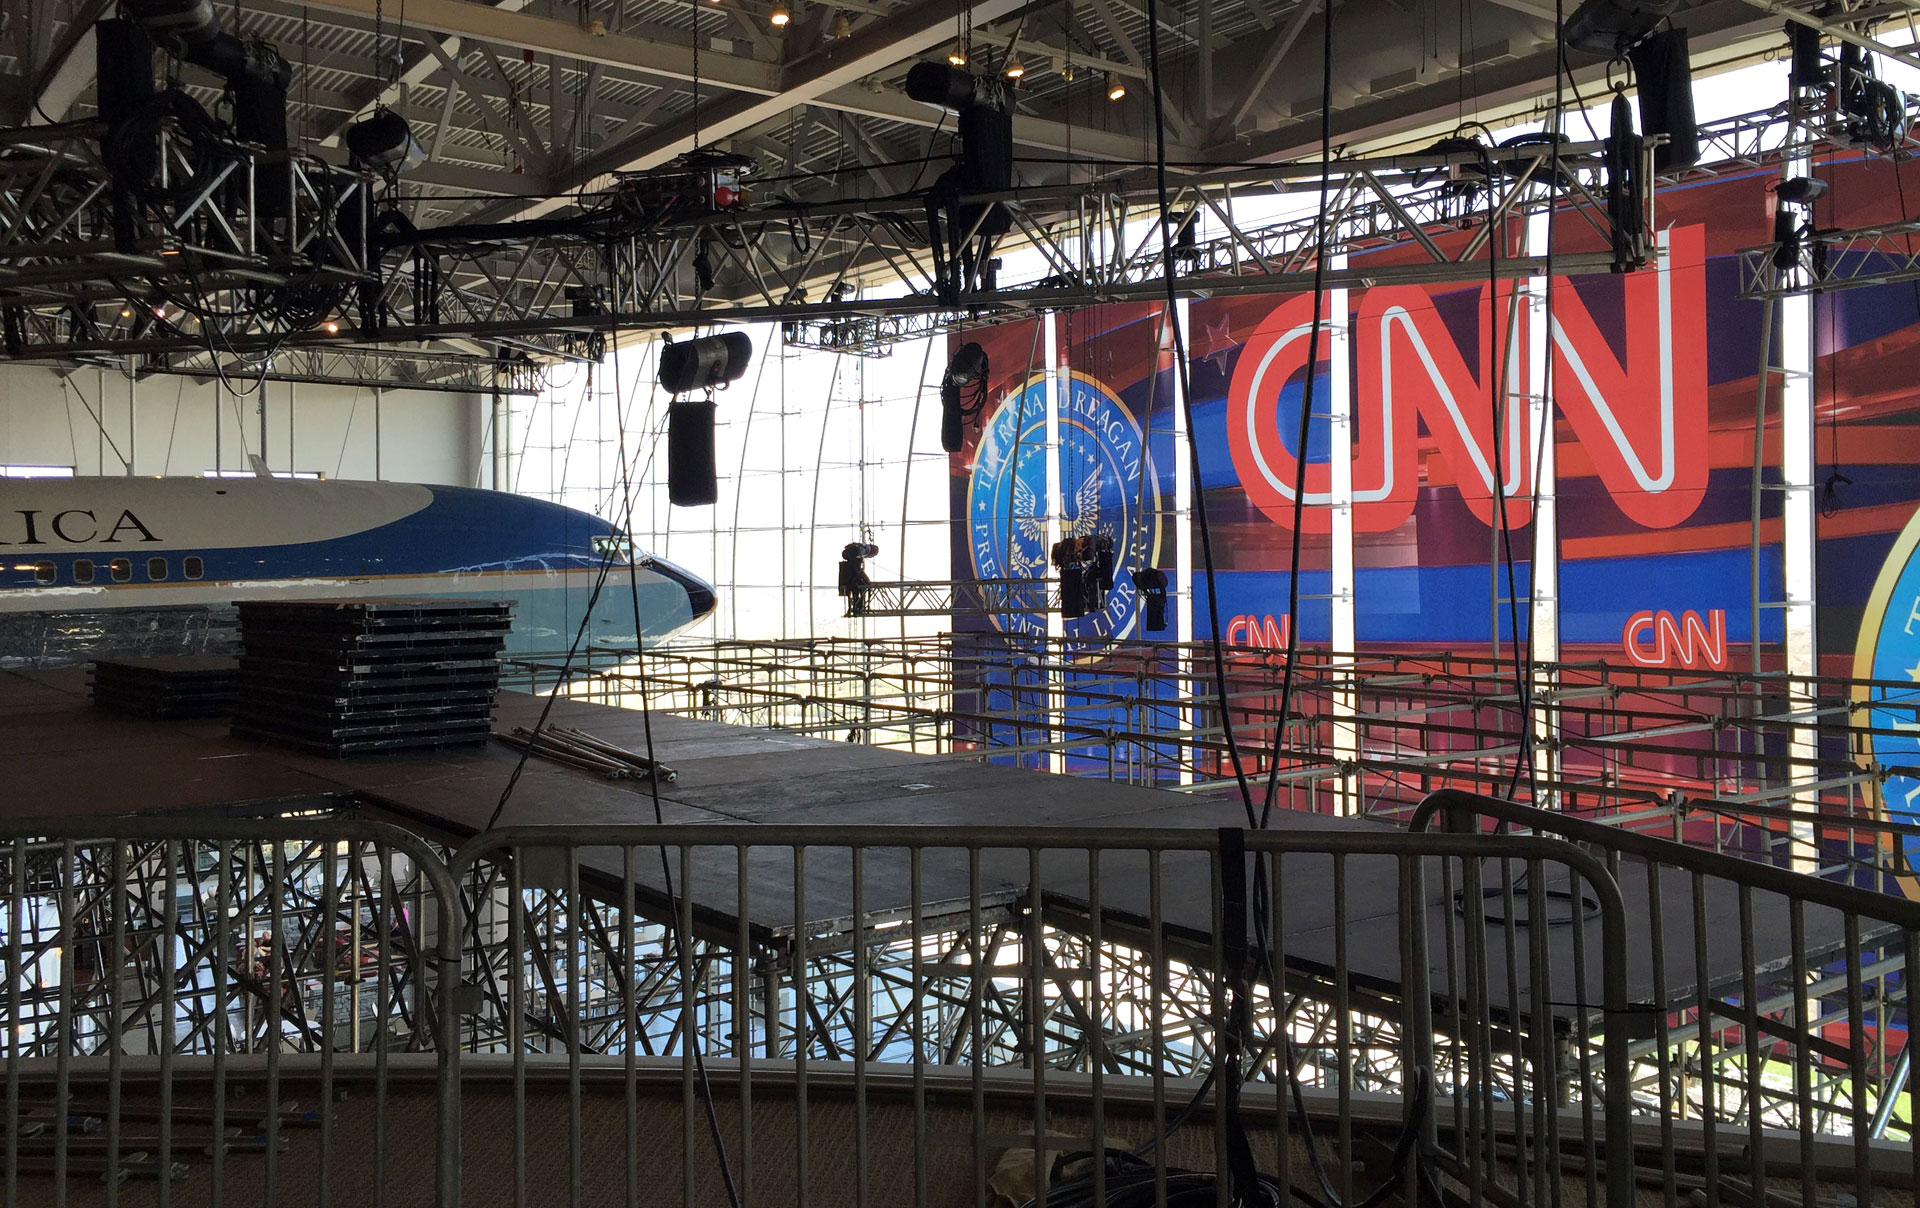 Scaffolding goes up at the Reagan Library in Simi Valley, the site of the next GOP debate.